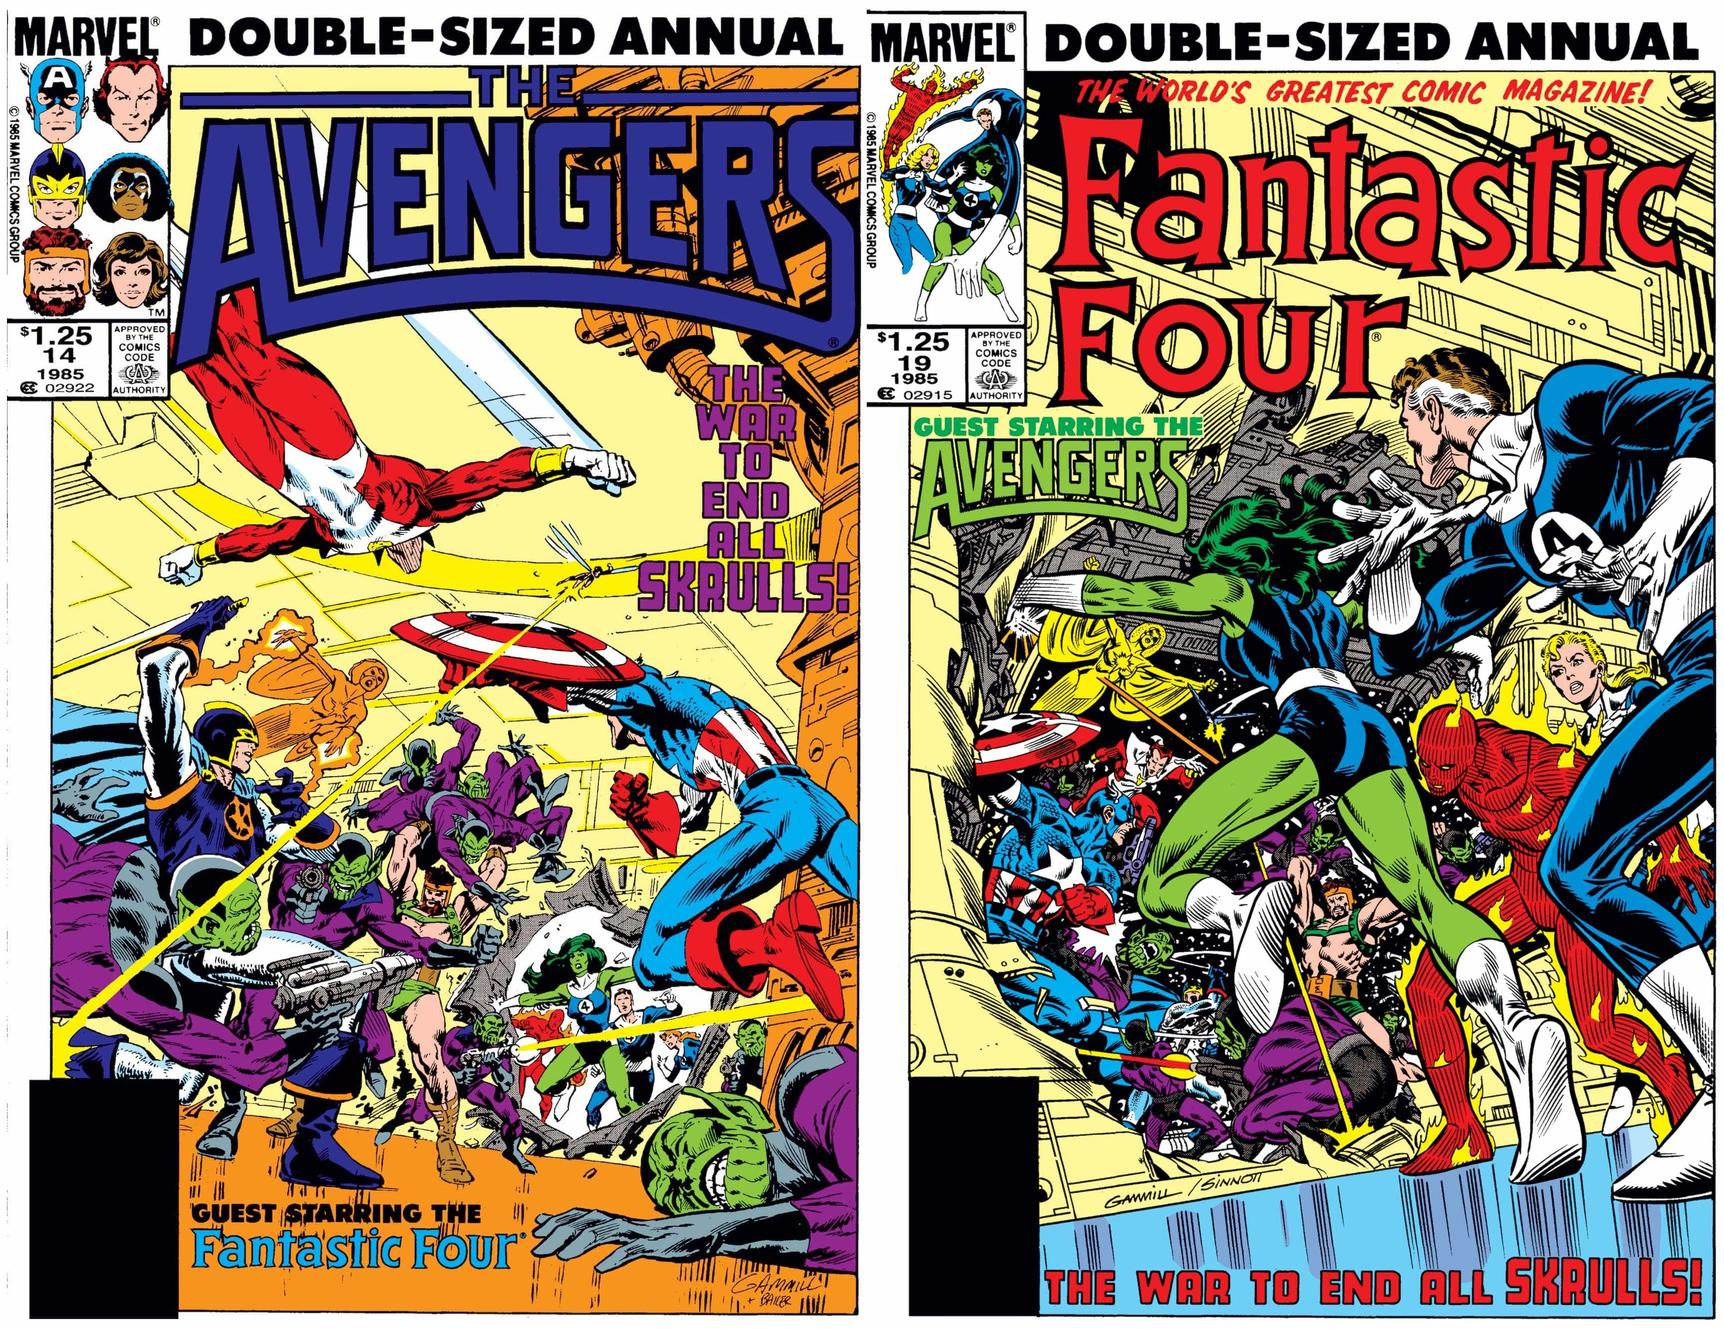 AVENGERS ANNUAL (1967) #14 and FANTASTIC FOUR ANNUAL (1963) #19